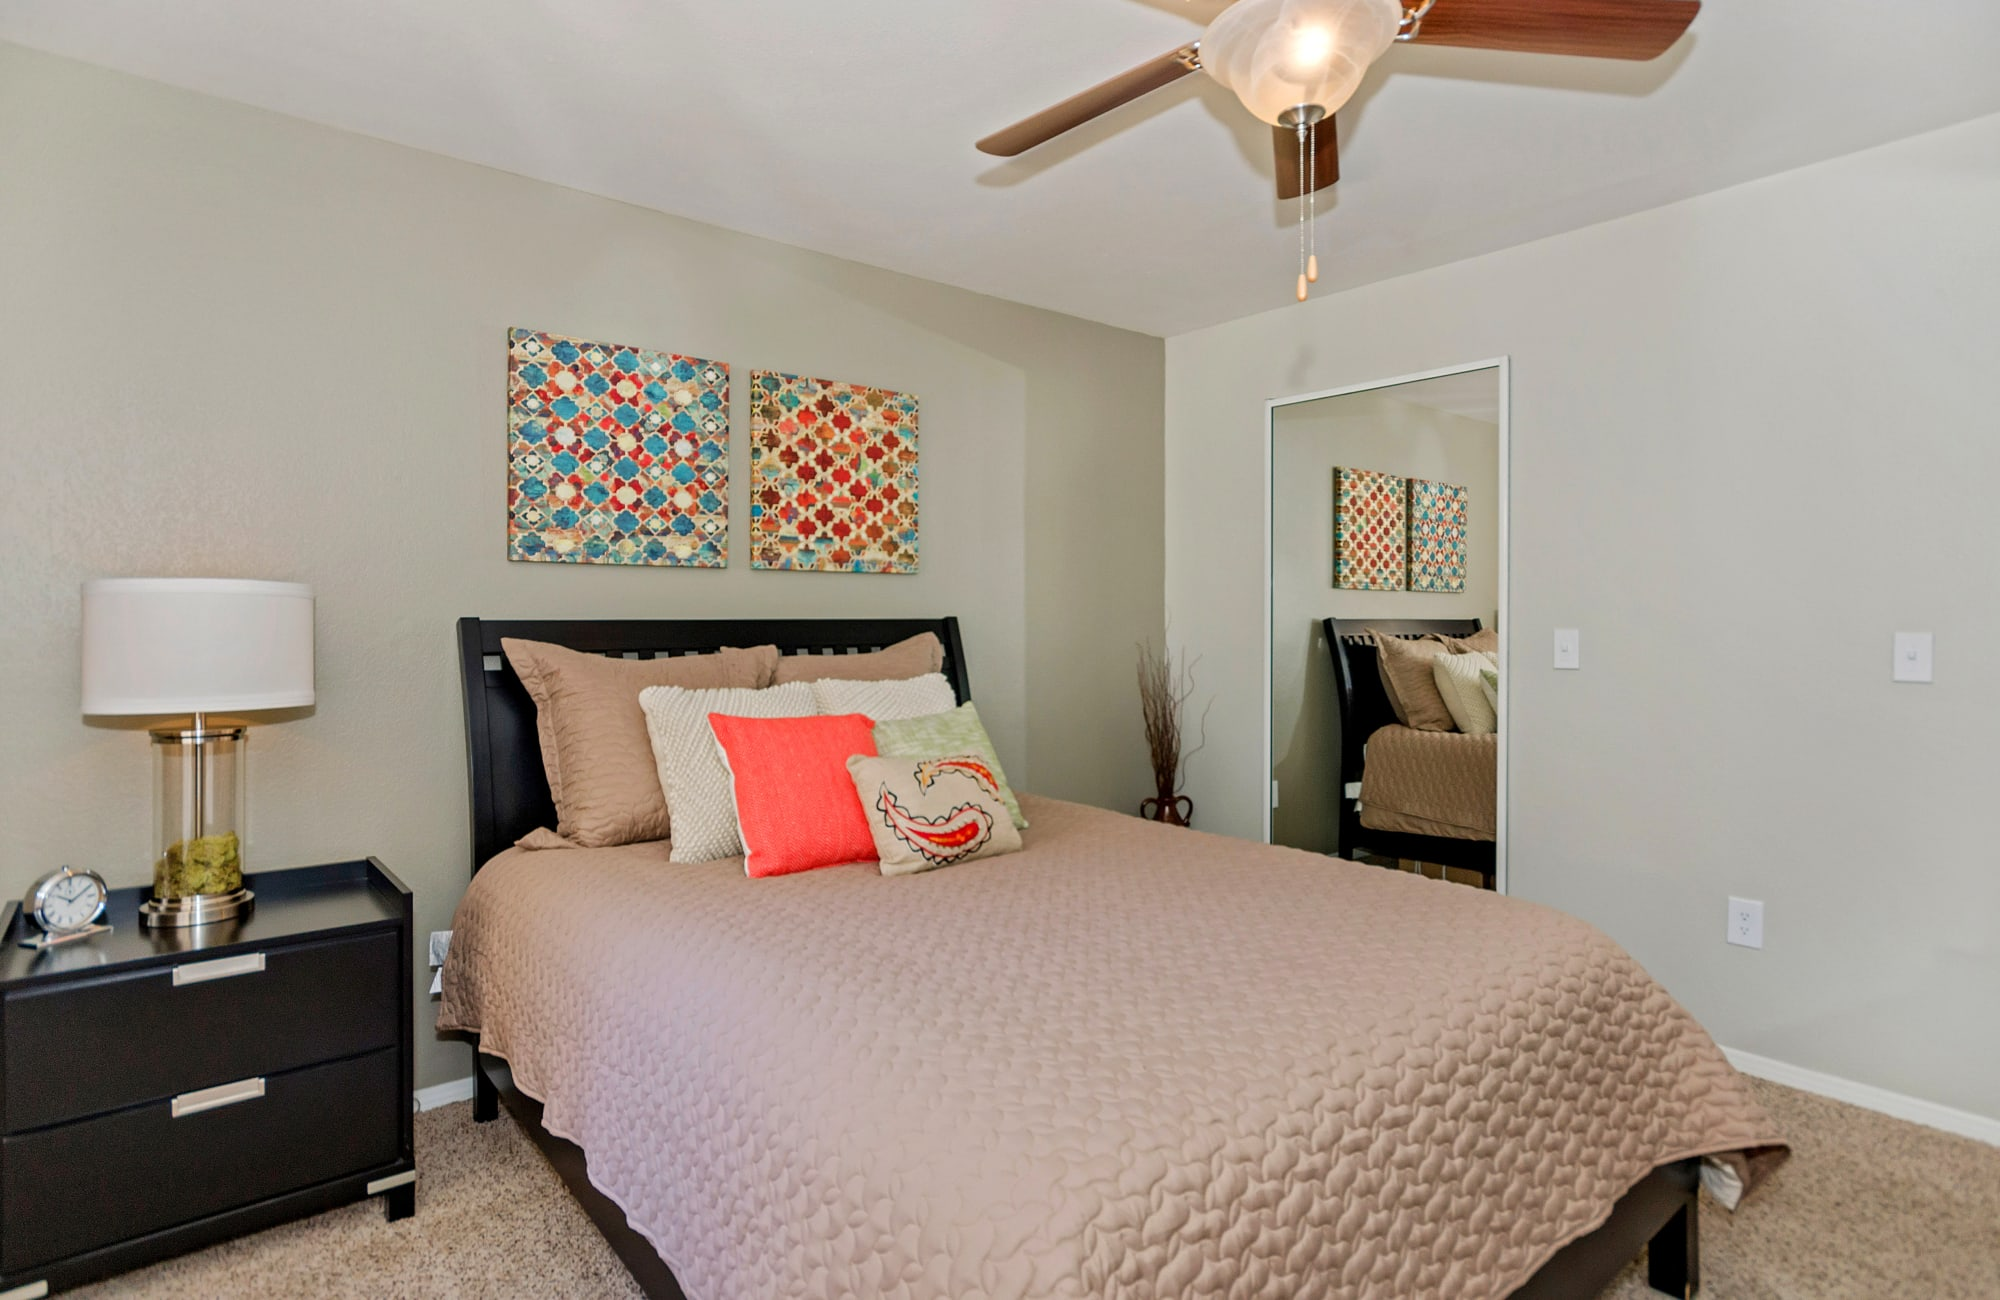 Guest bedroom with ceiling fan in model home at The Boulevard in Phoenix, Arizona